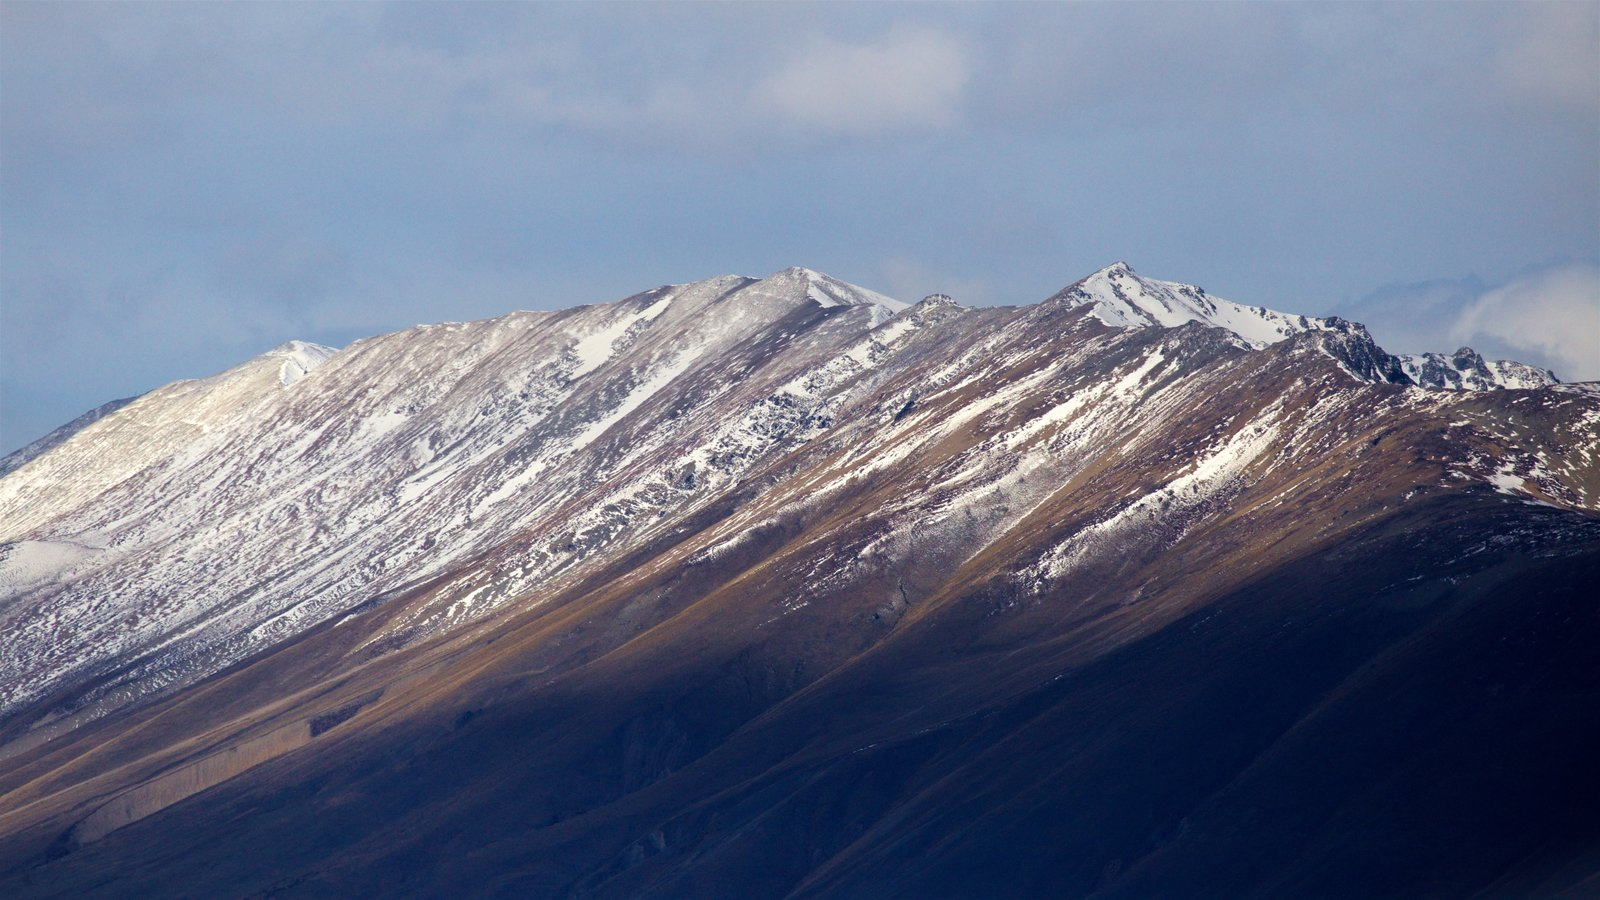 Mount John Observatory showing snow and mountains